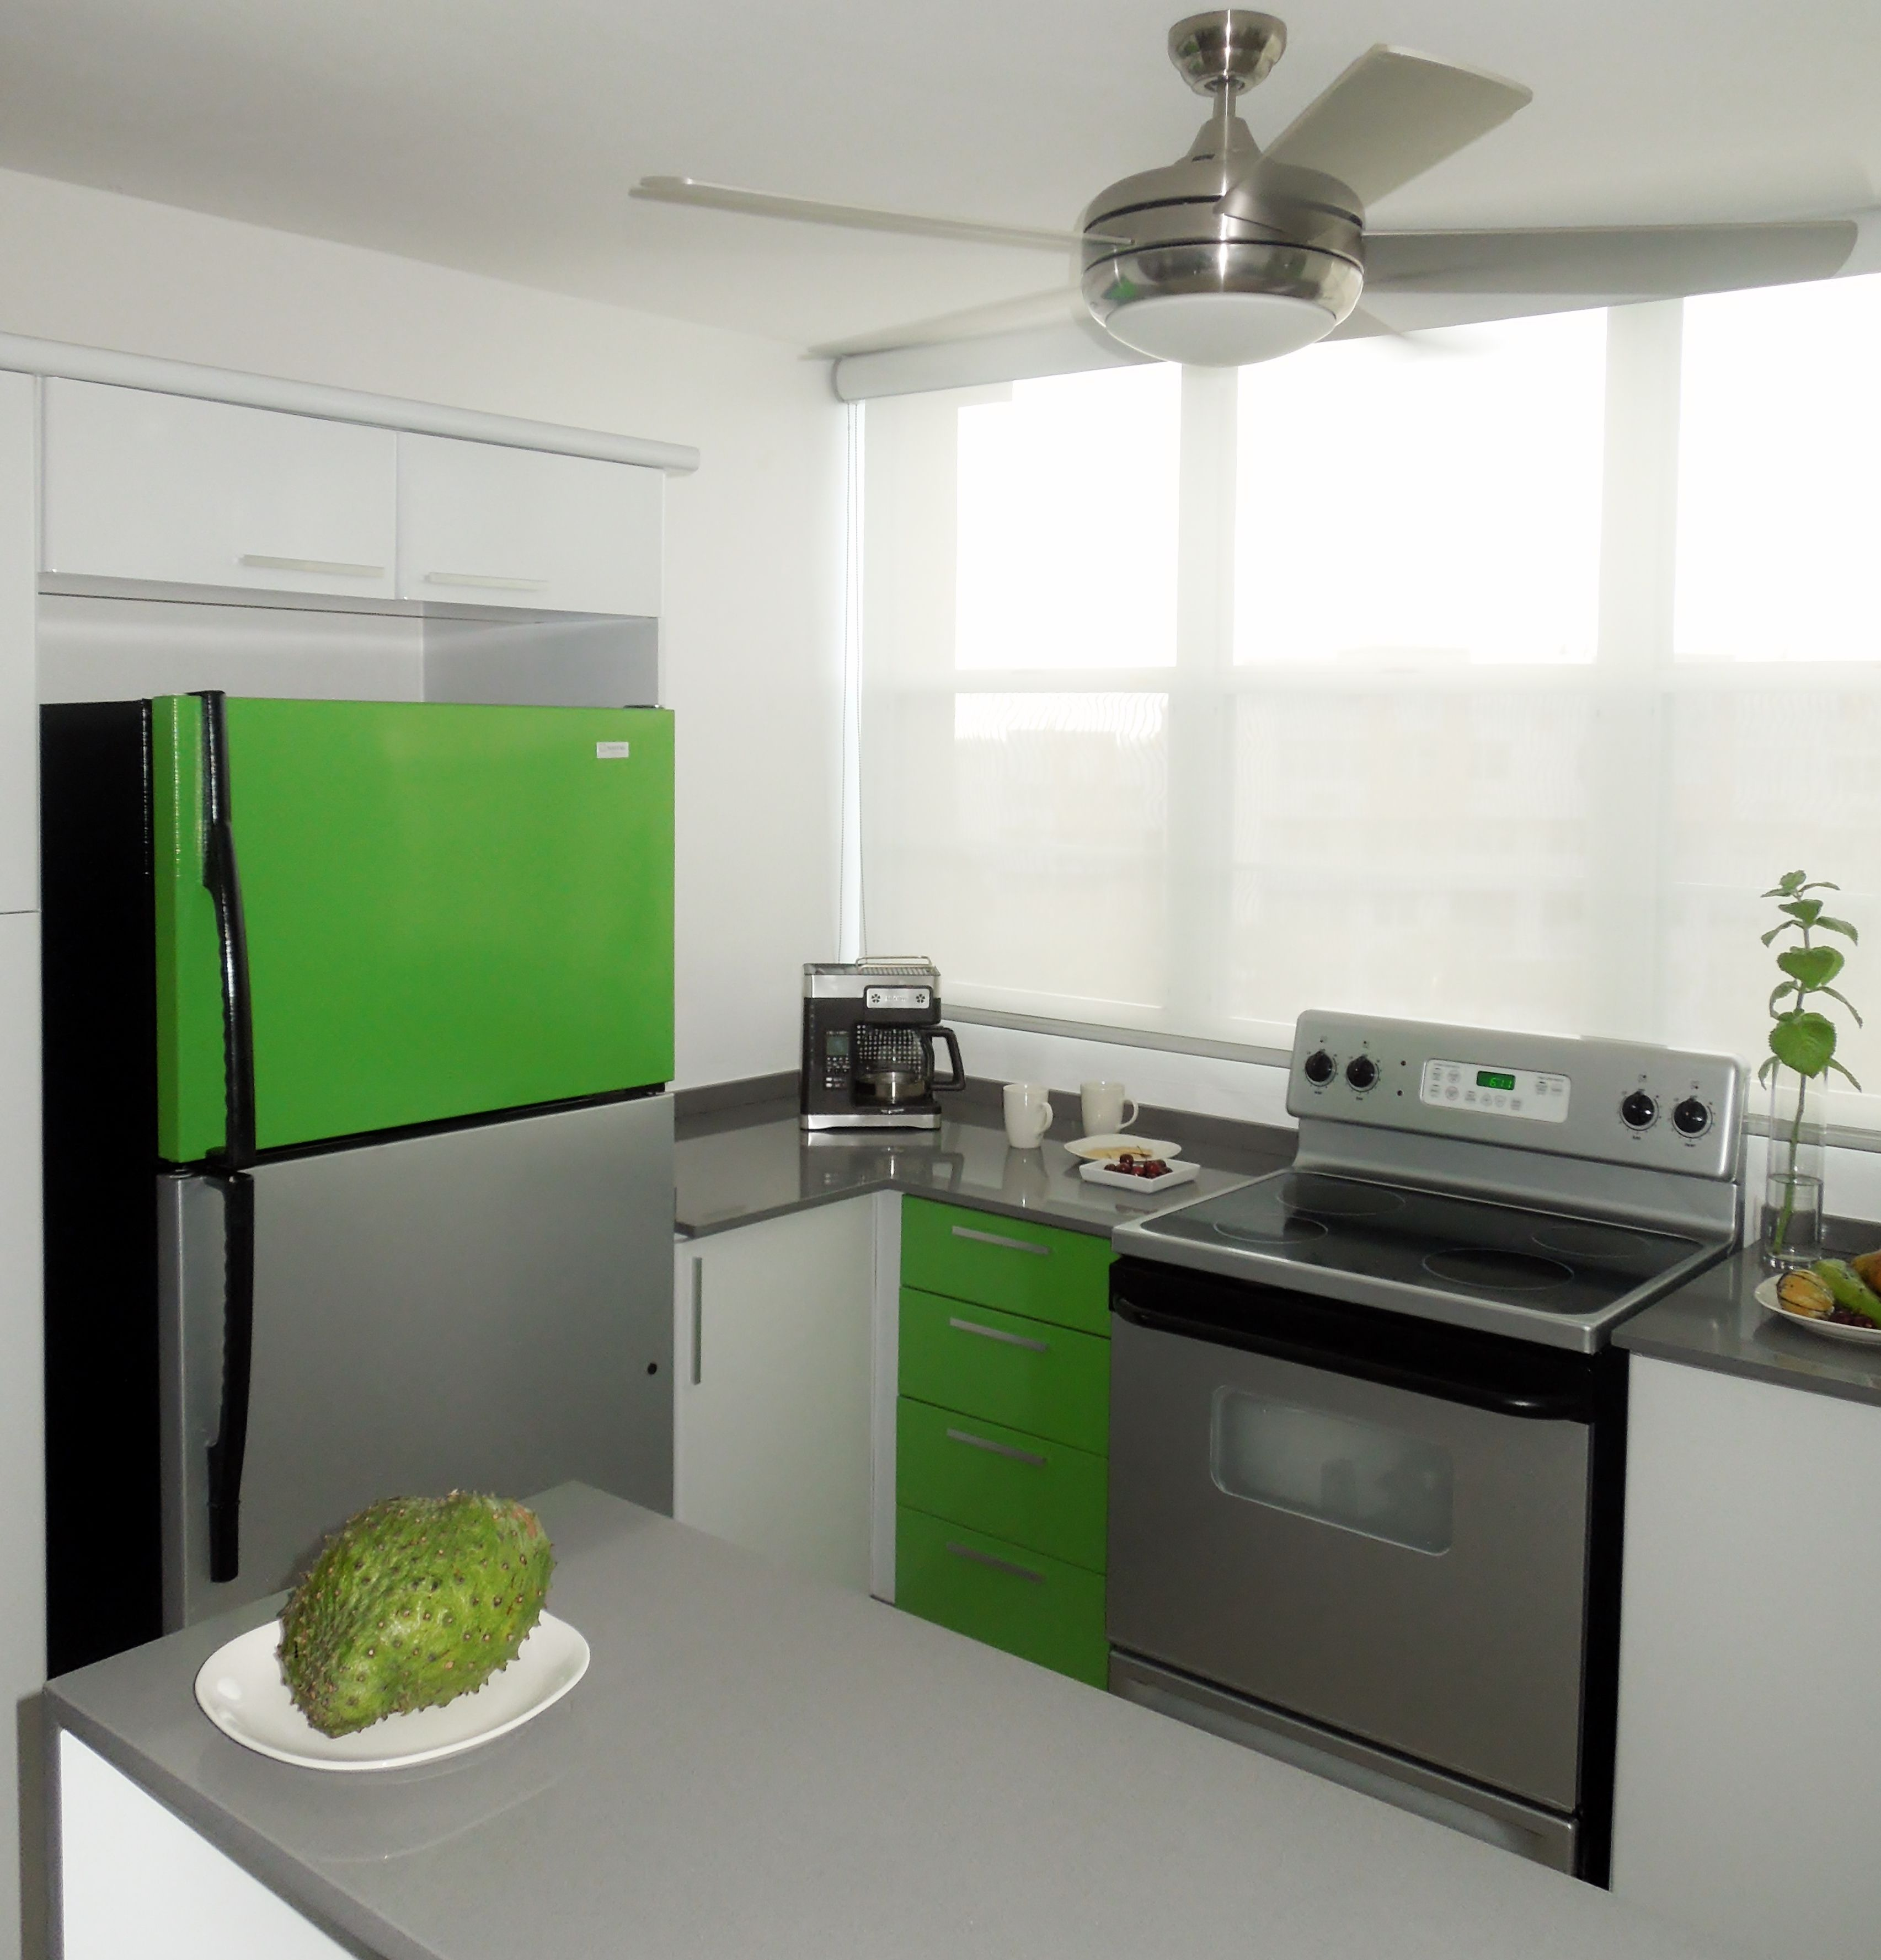 Color in the Kitchen! A low budget solution for refrigerator resurfacing.